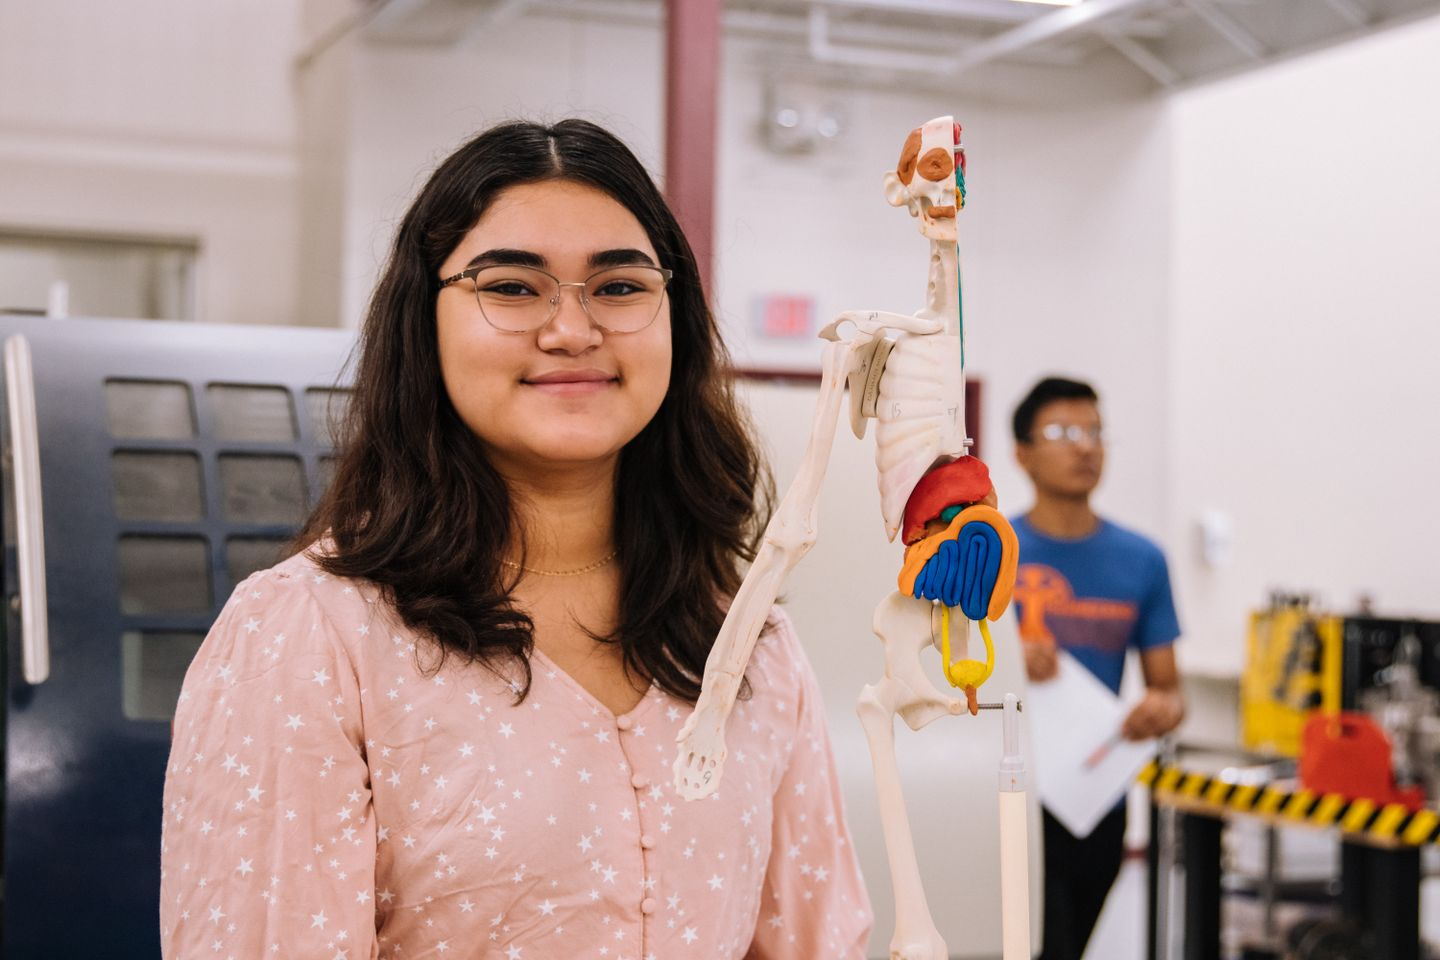 A female student in front of a scale model of a human skeleton